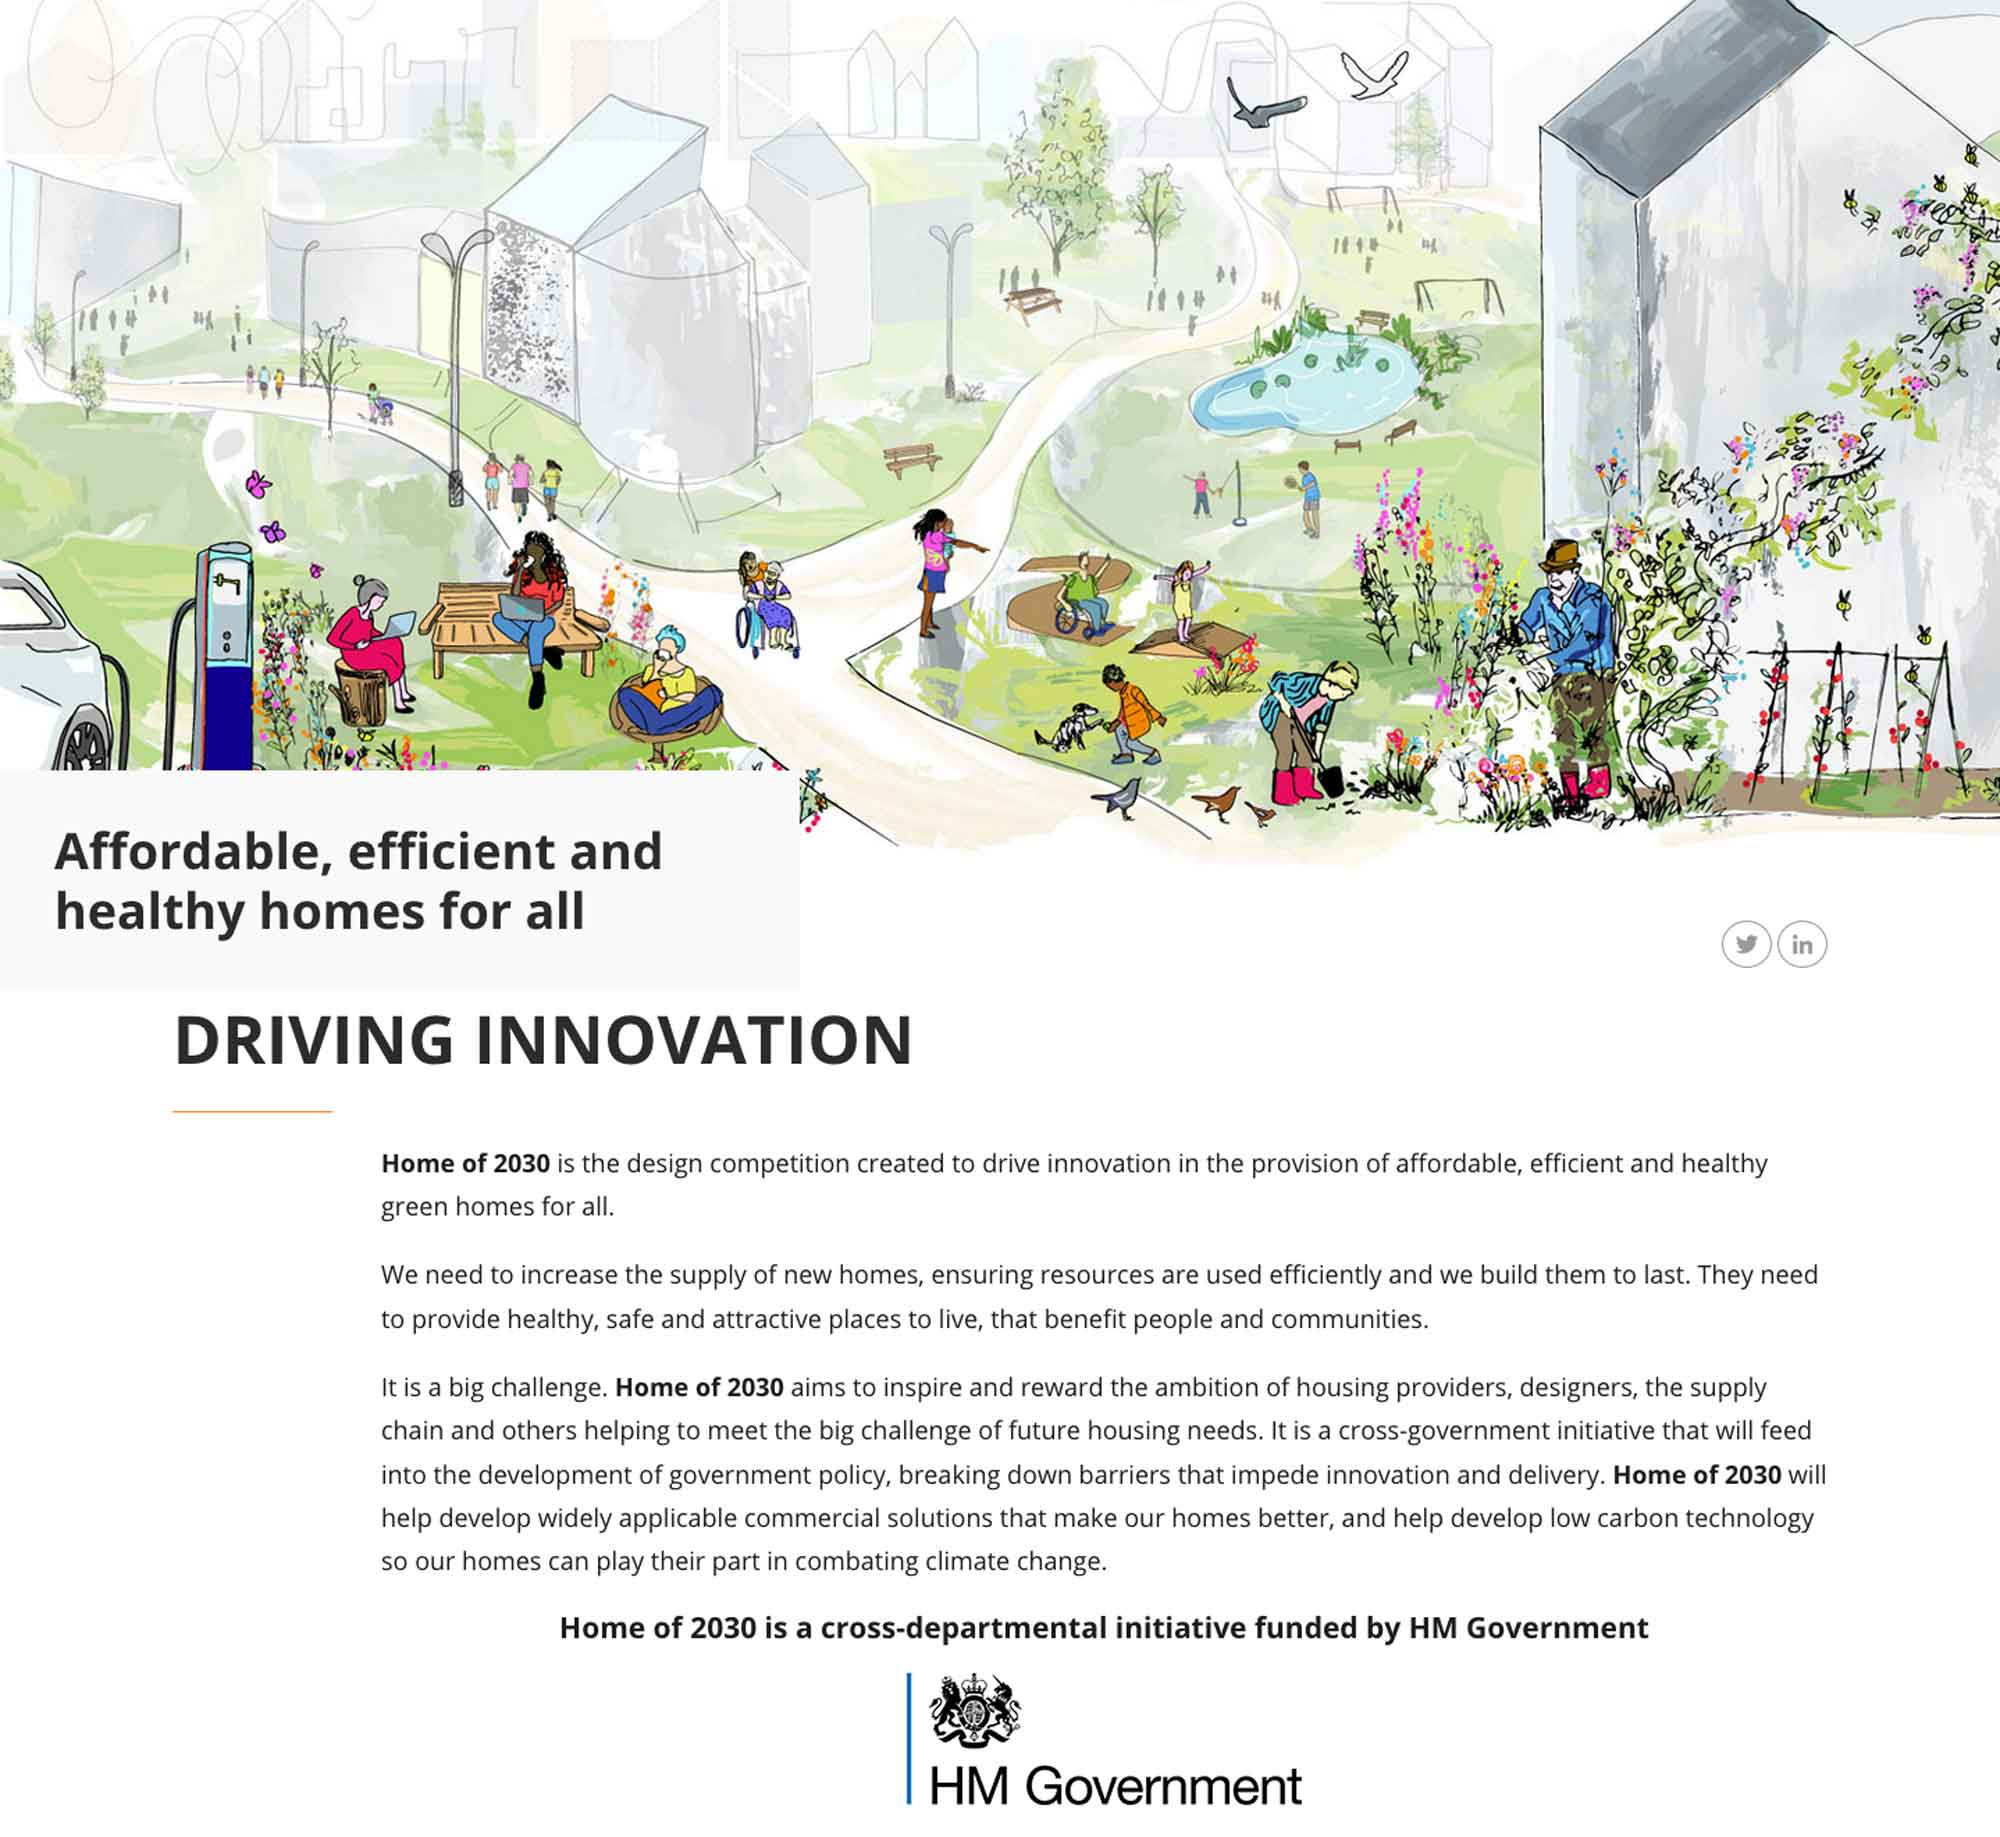 home-of-2030-design competition-openstudio-architects